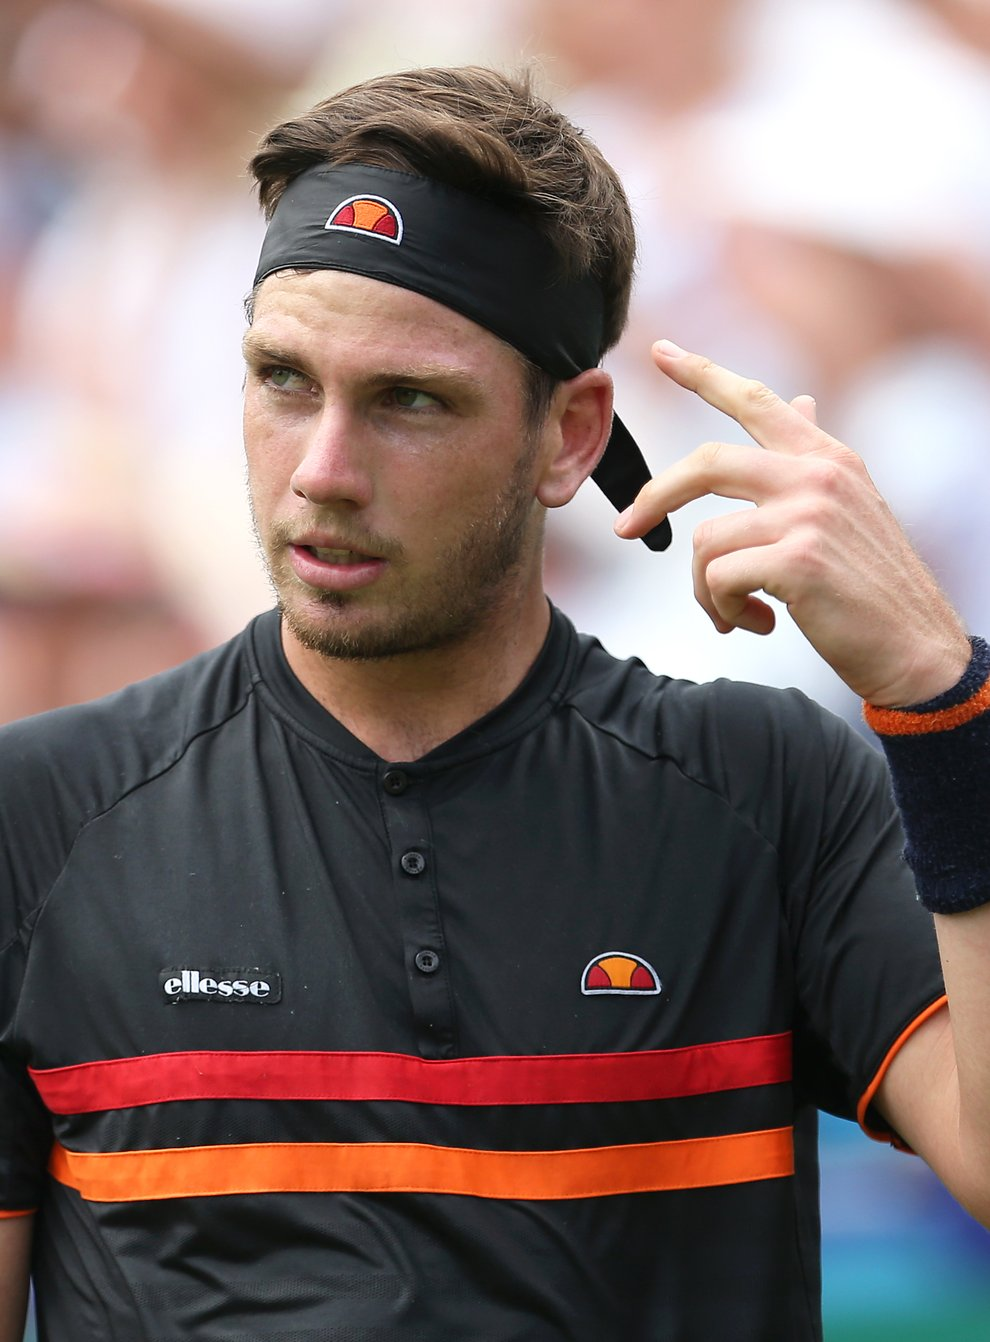 Cameron Norrie continued his good form on clay